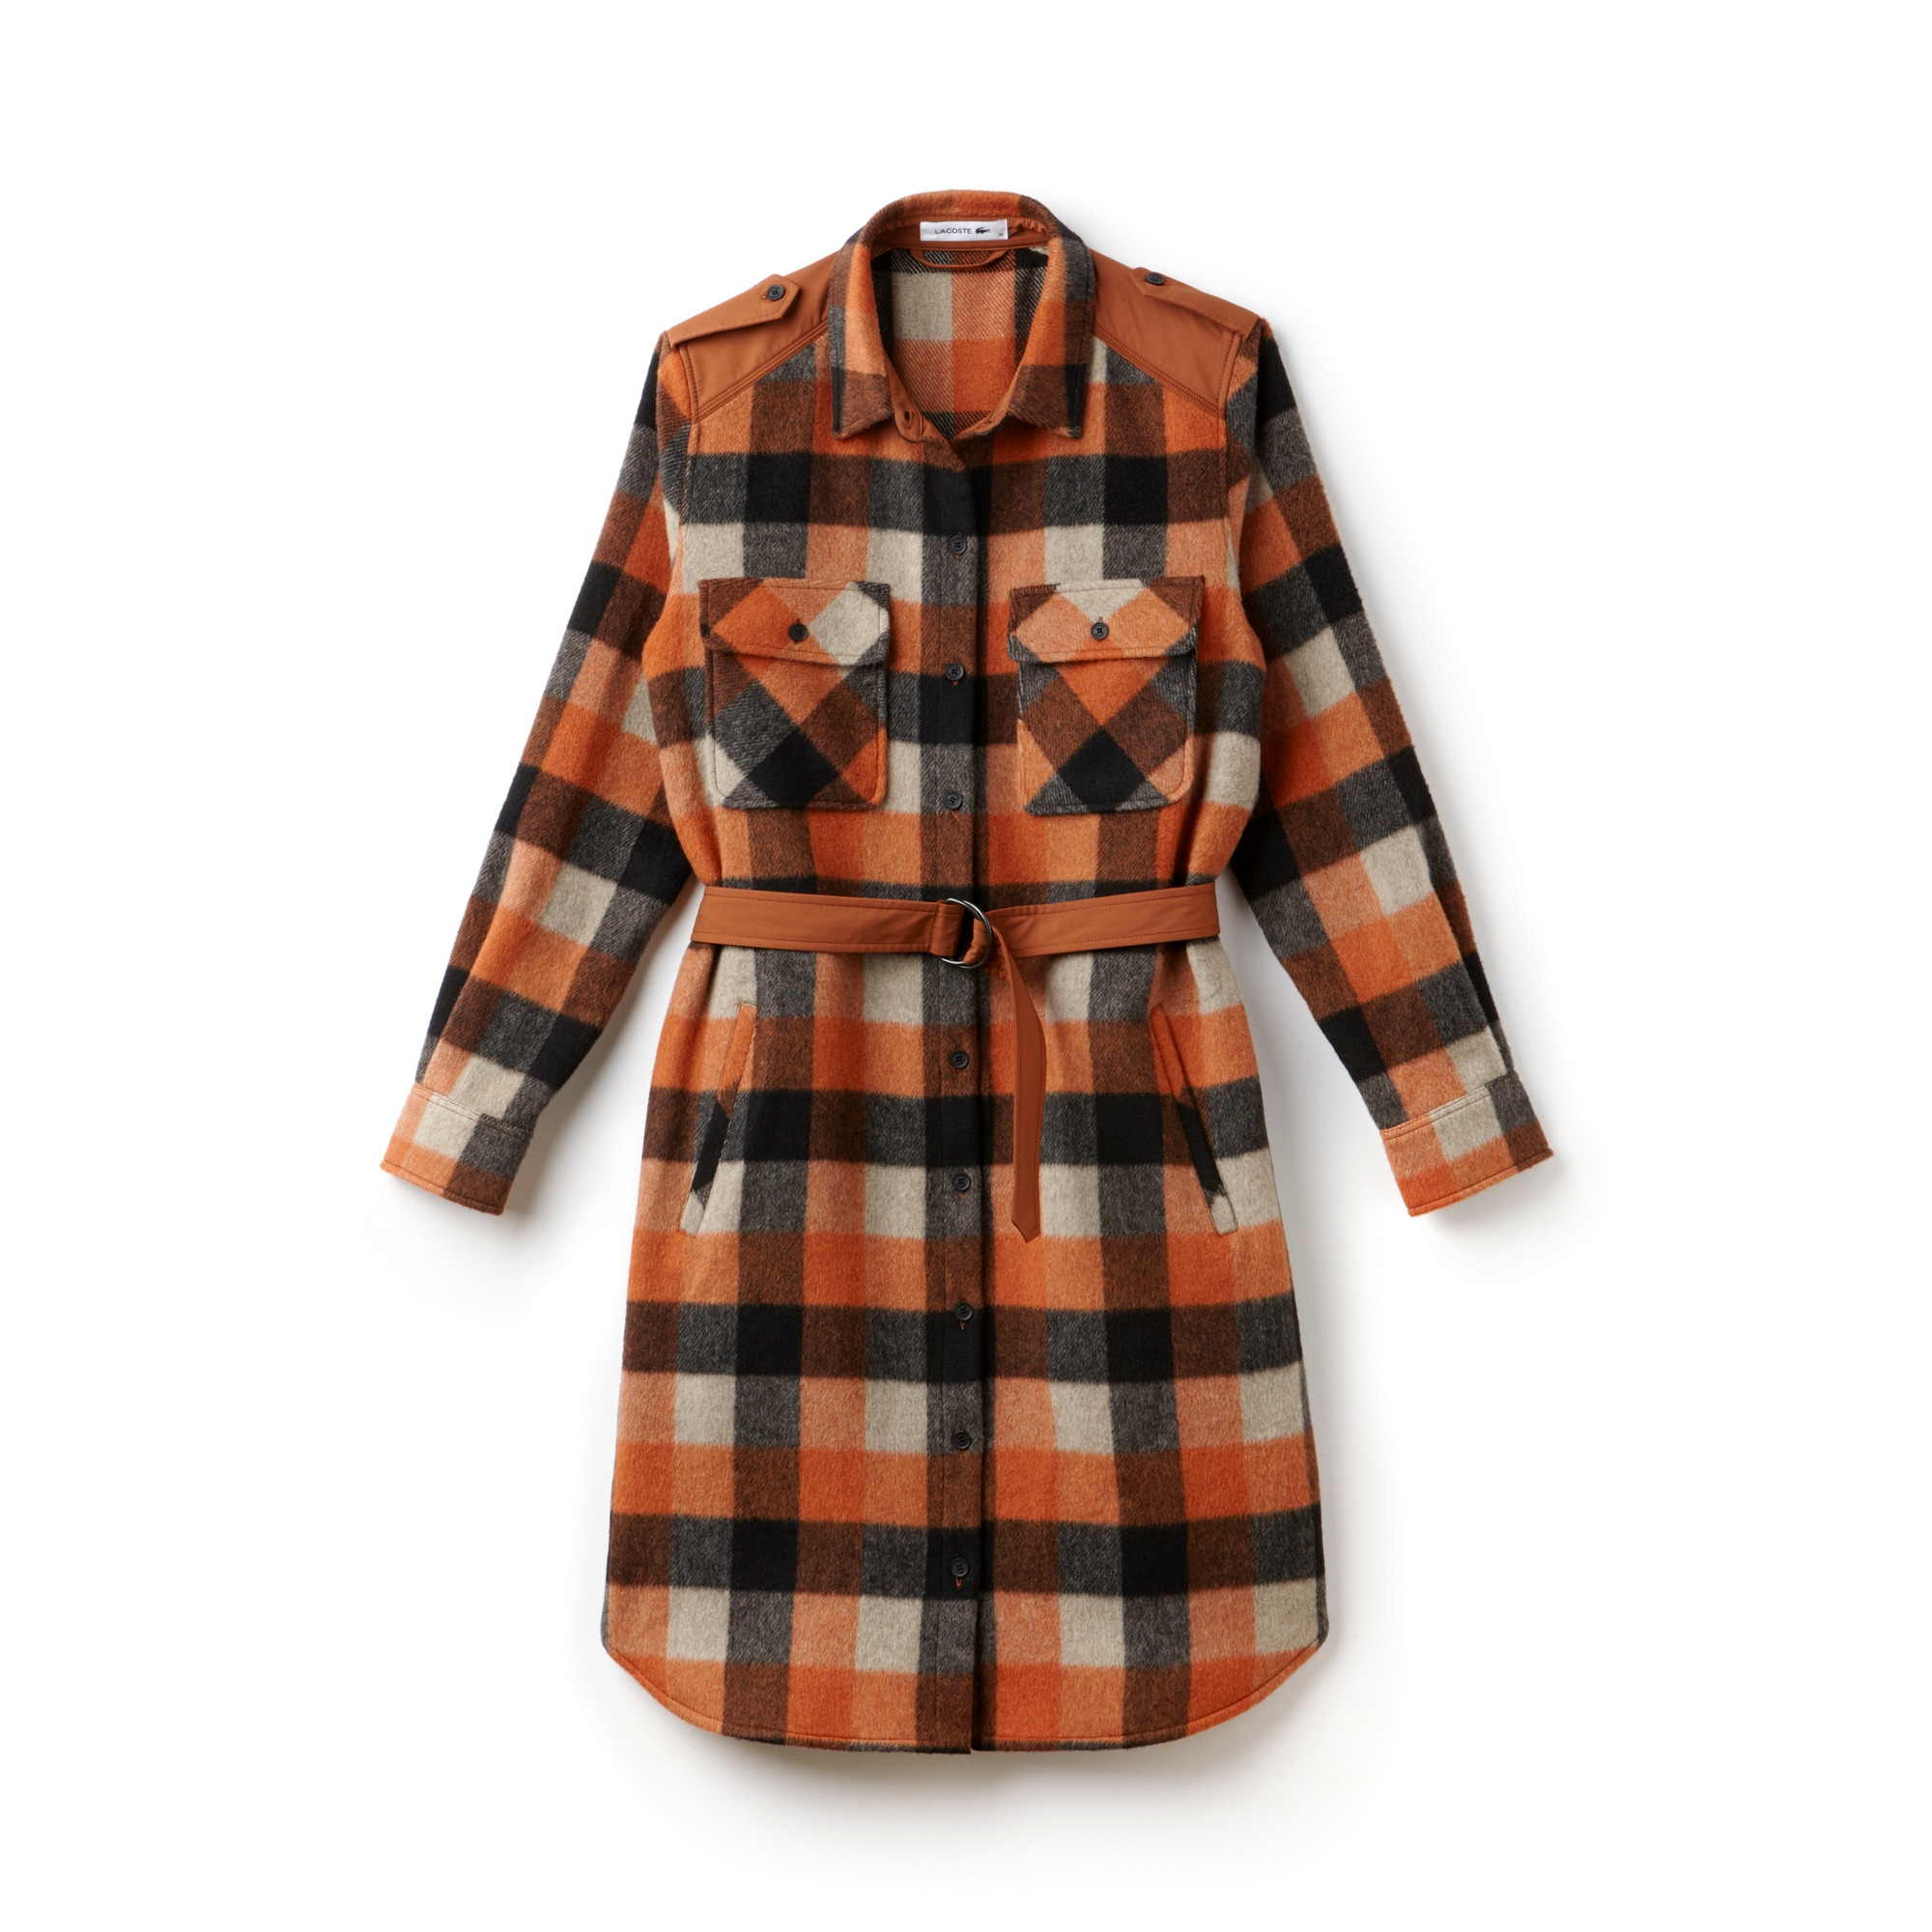 Women's Fashion Show Wool Flannel Check Shirt Dress